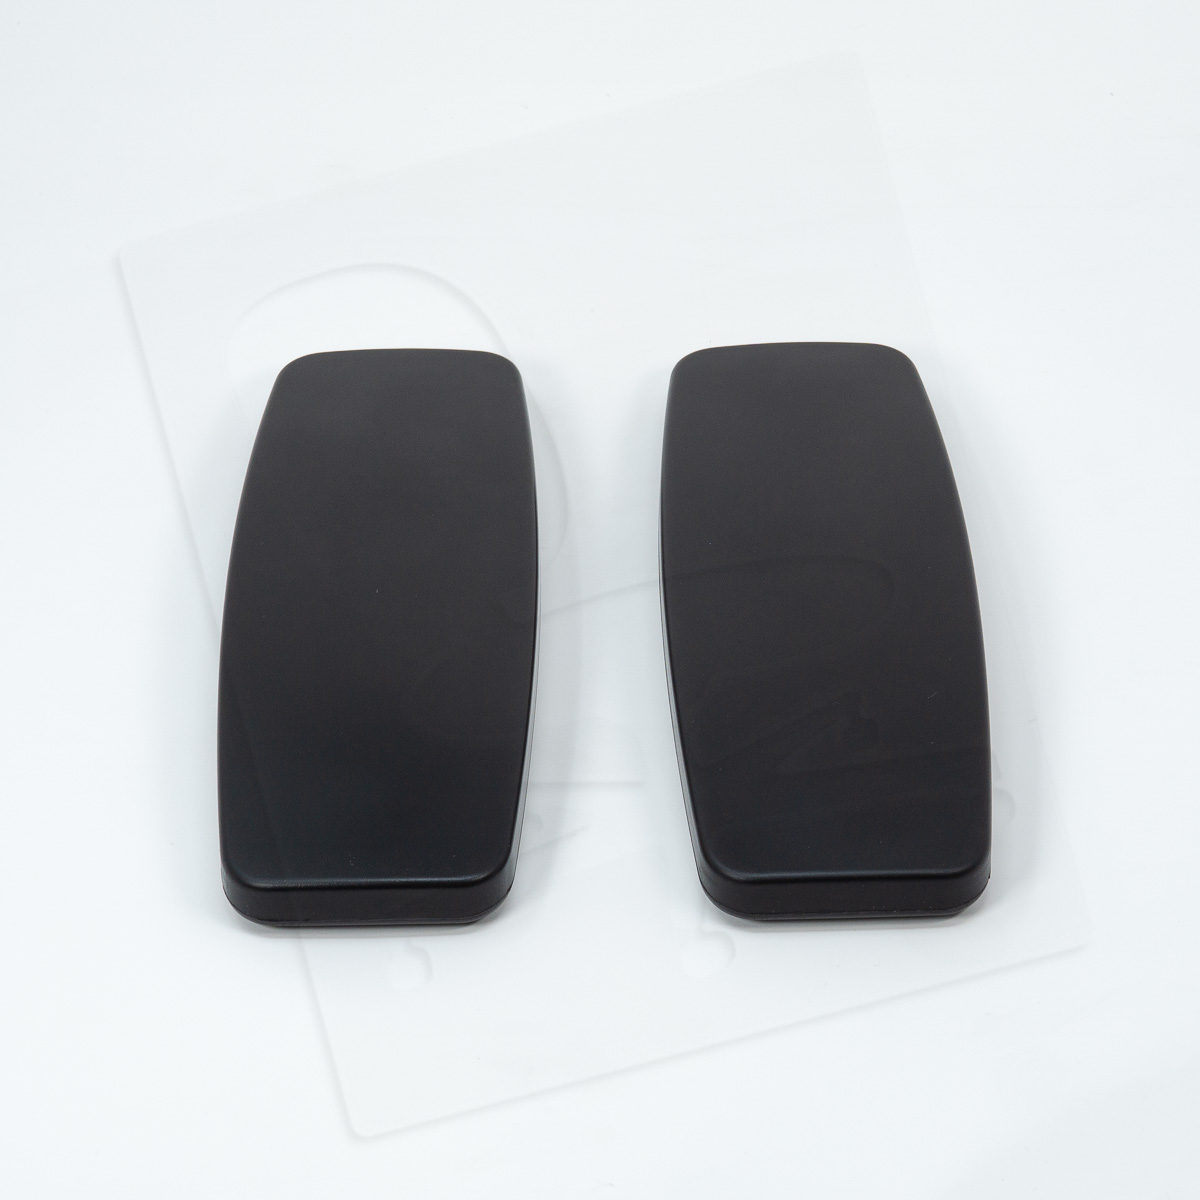 Crandall Office Furniture Aftermarket Steelcase Amia Arm Pads 002